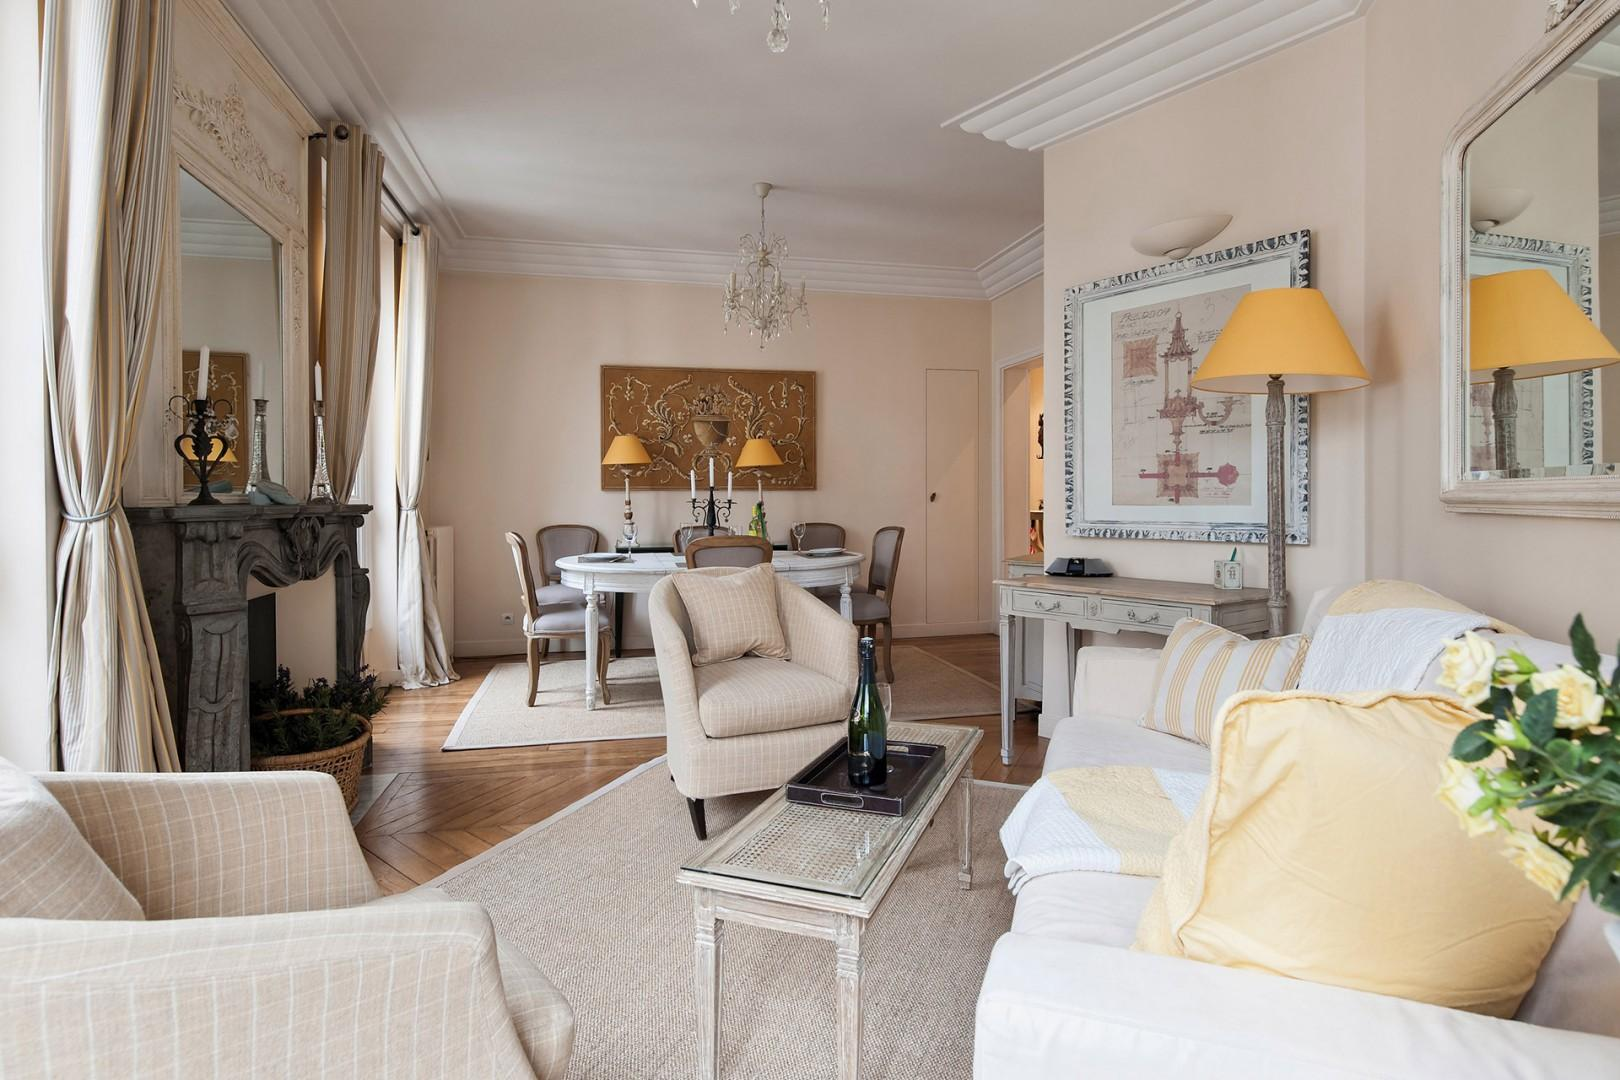 Relax in the bright double living room with an elegant dining area.